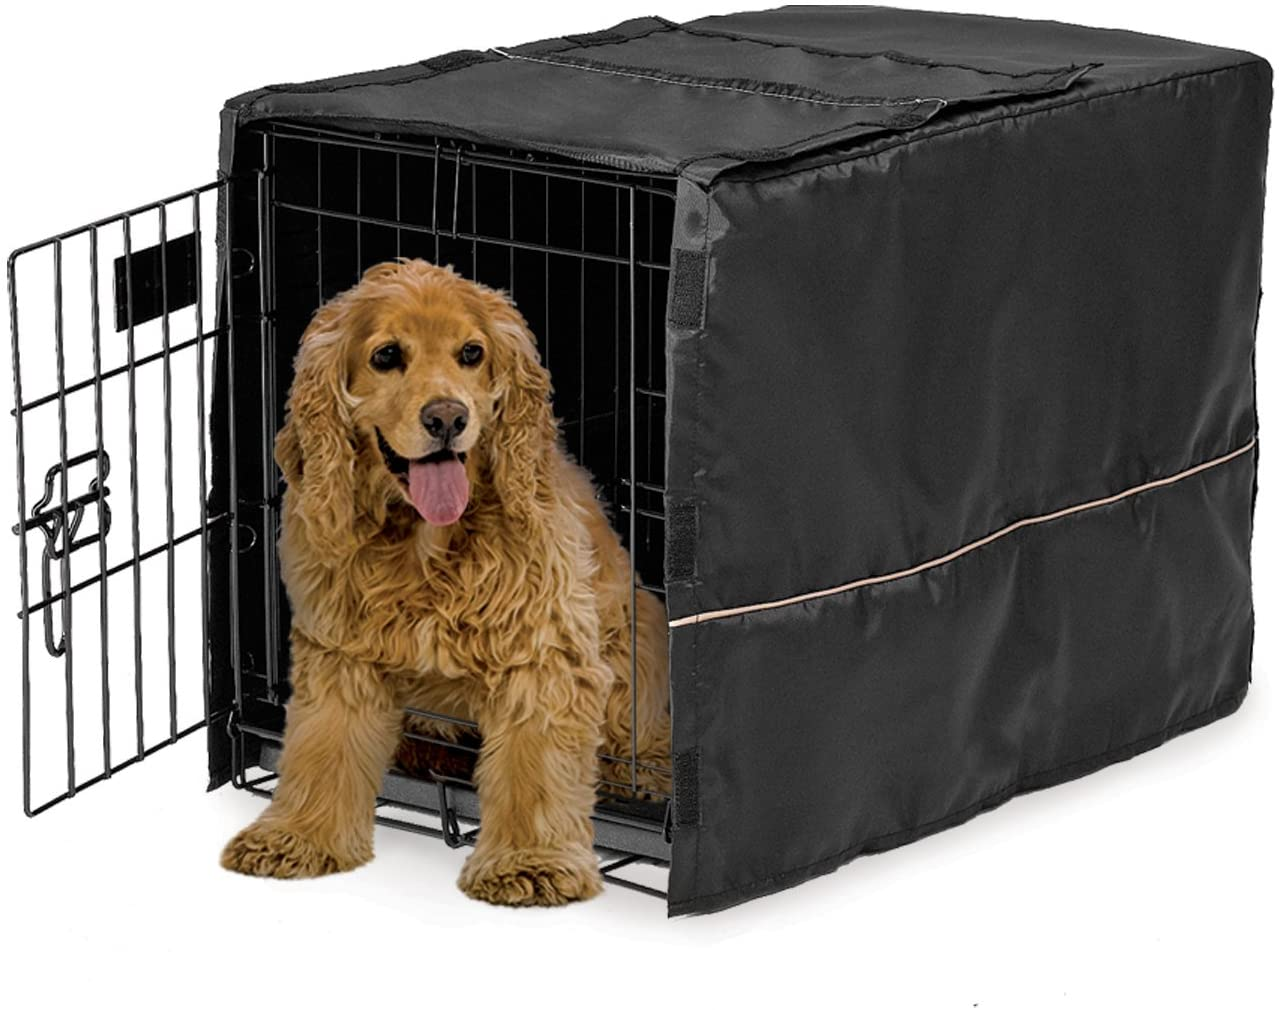 MidWest Max High quality new 57% OFF Dog Crate Cover Do Privacy Fits